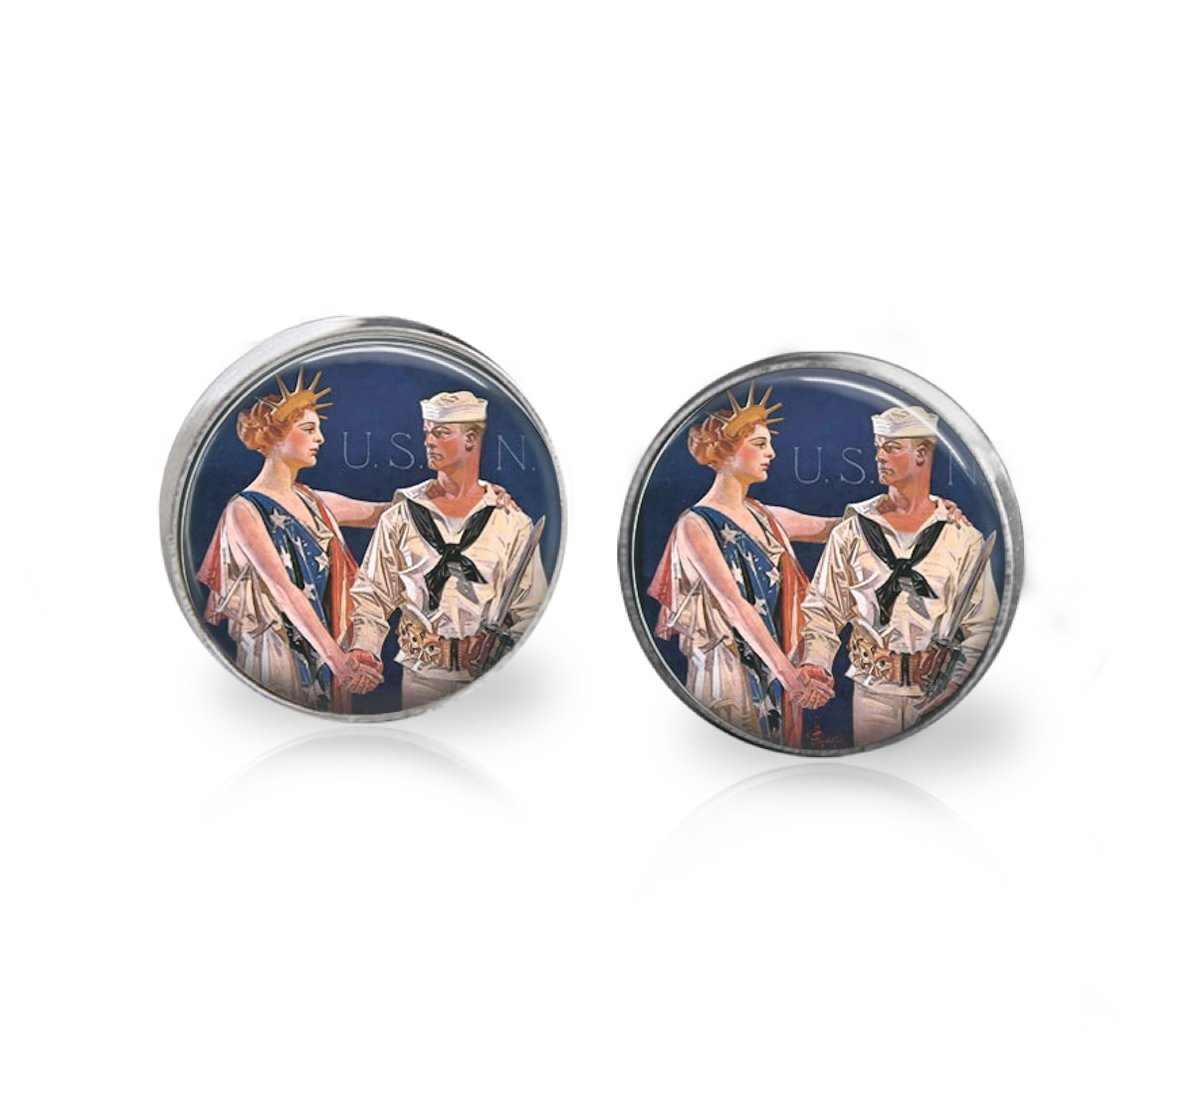 Sailor Navy Earrings, gifts for Her, vintage poster